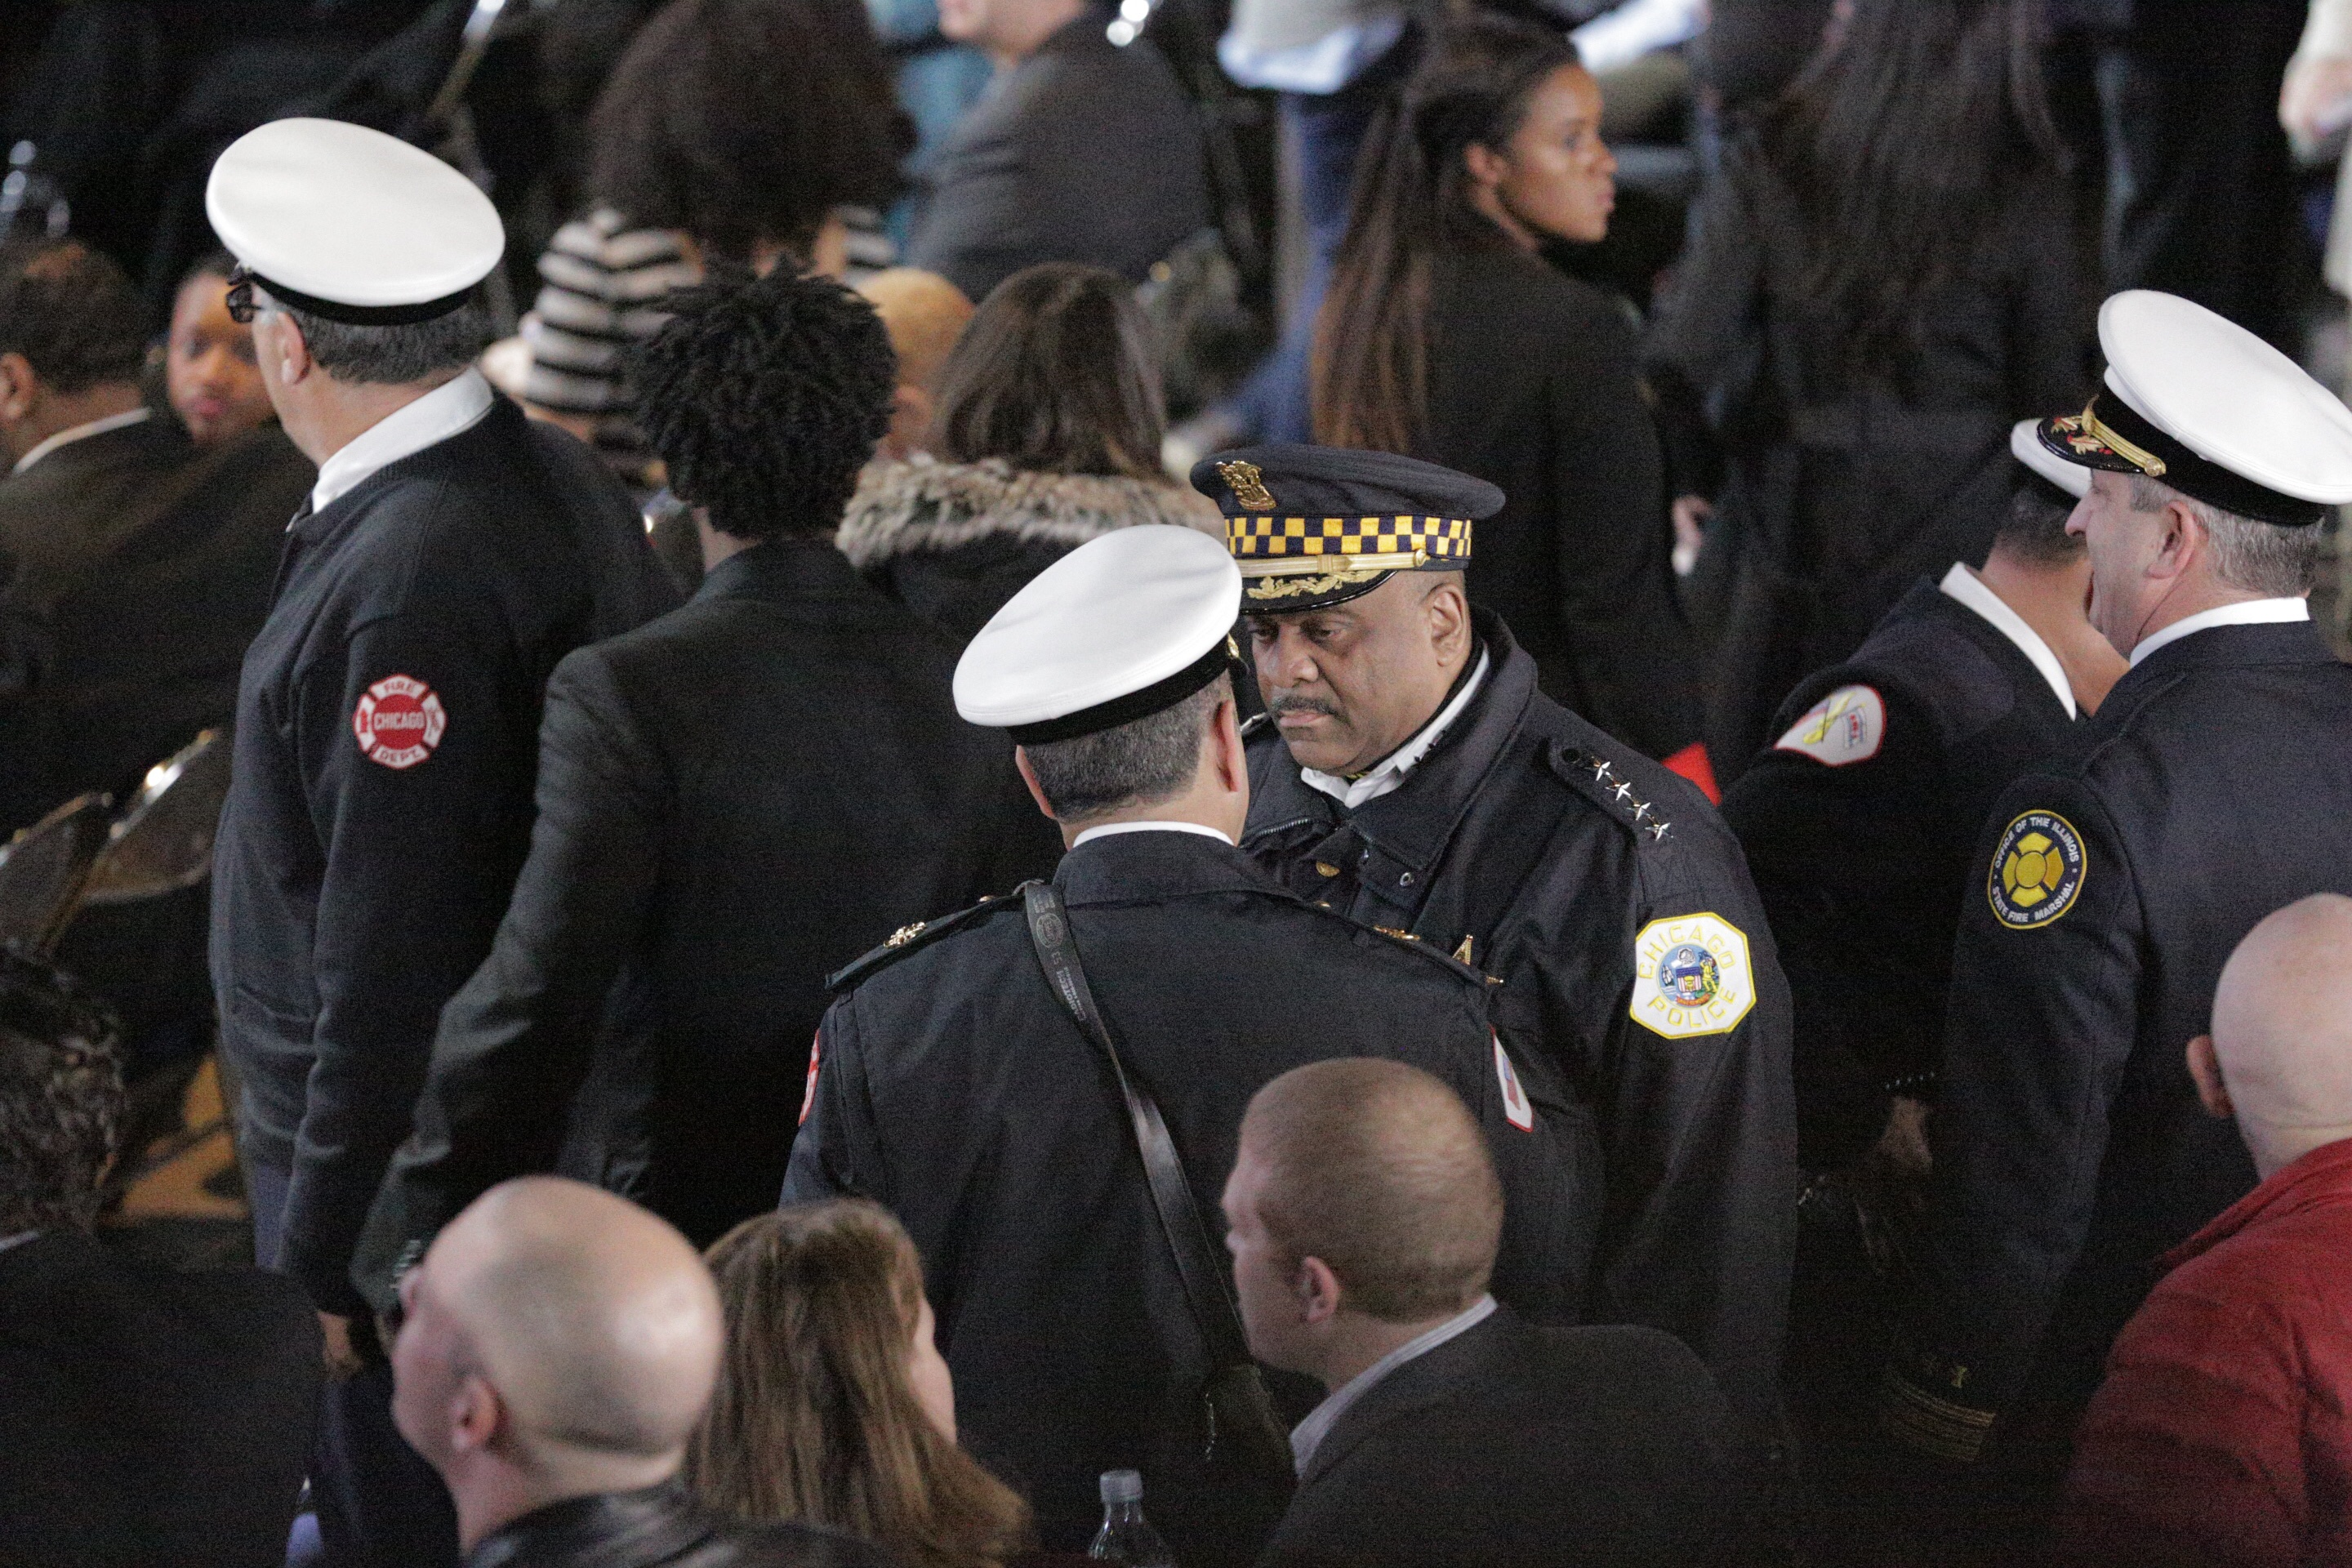 Chicago Police Supt. Eddie Johnson at President Barack Obama's farewell speech Tuesday at McCormick Place in Chicago. (Andrew Gill/WBEZ)